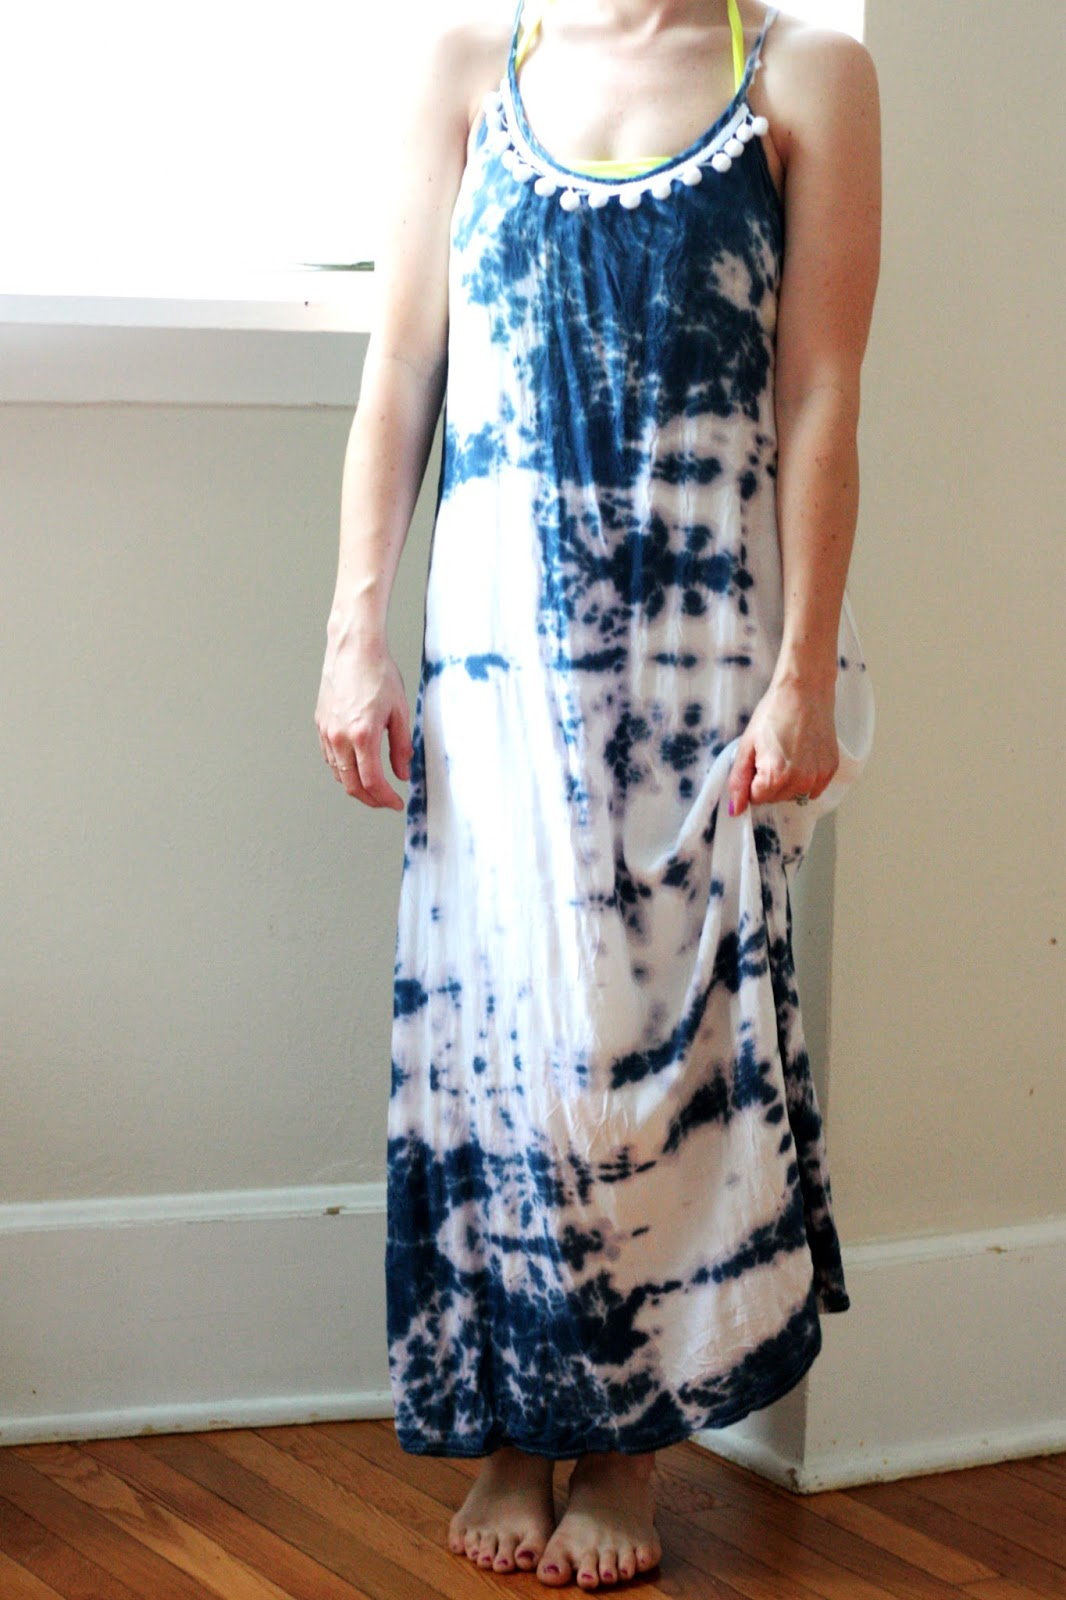 DIY: EMBELLISHED TIE-DYE MAXI DRESS TUTORIAL